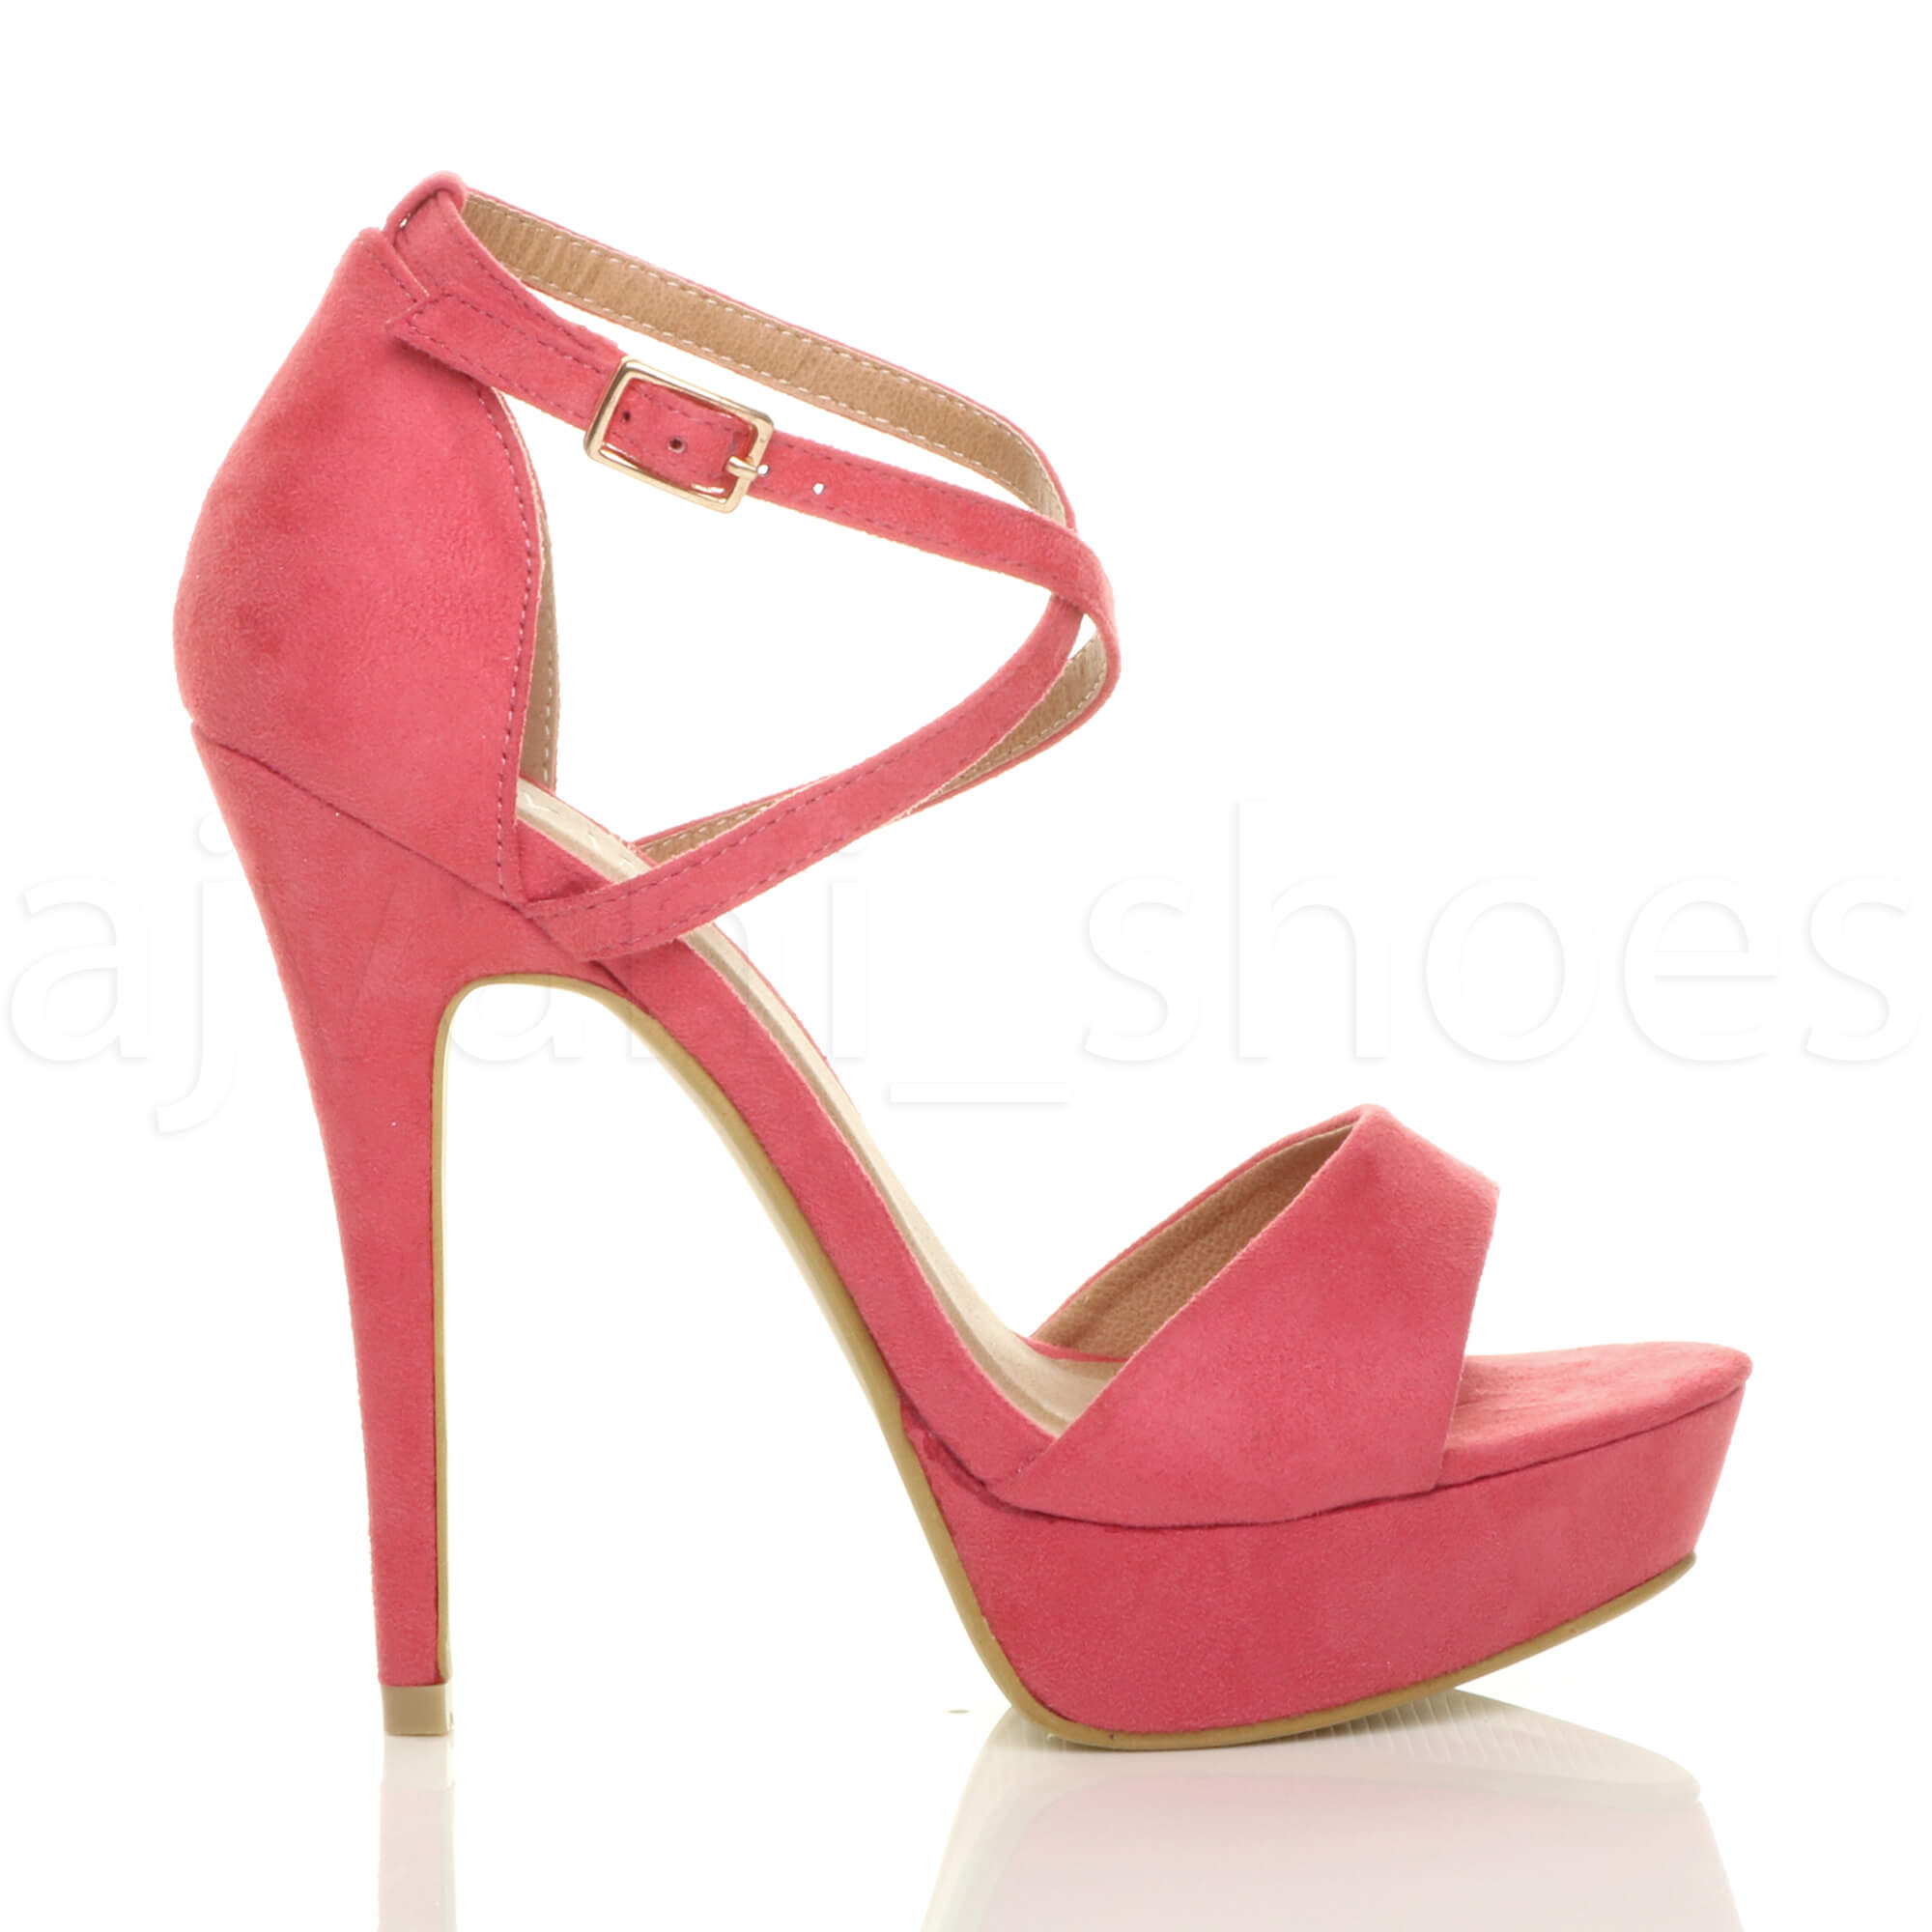 WOMENS-LADIES-PLATFORM-HIGH-HEEL-PEEP-TOE-CROSS-OVER-STRAPPY-SANDALS-SHOES-SIZE thumbnail 75